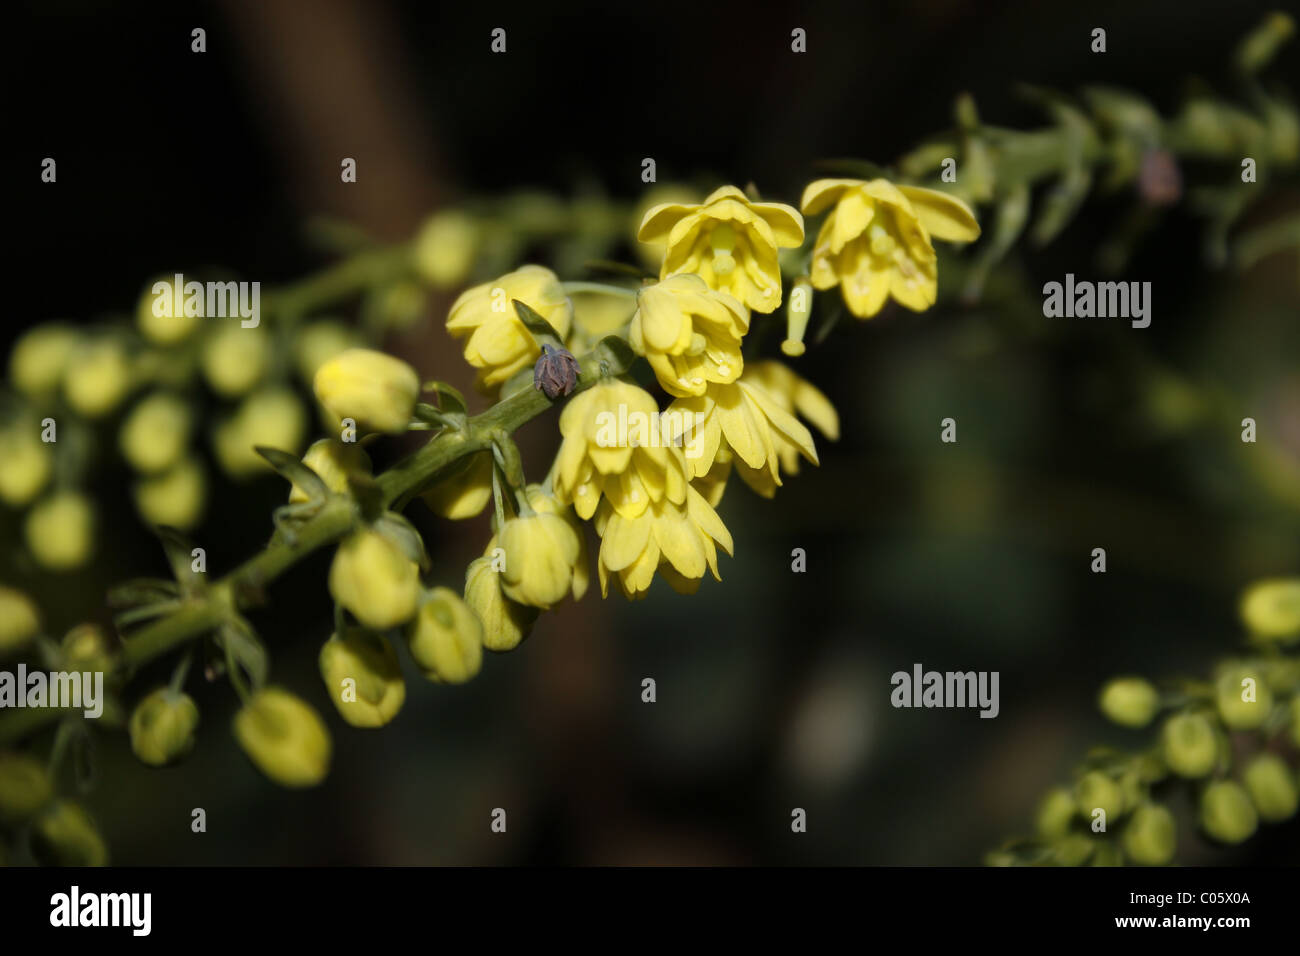 mahonia flower - Stock Image